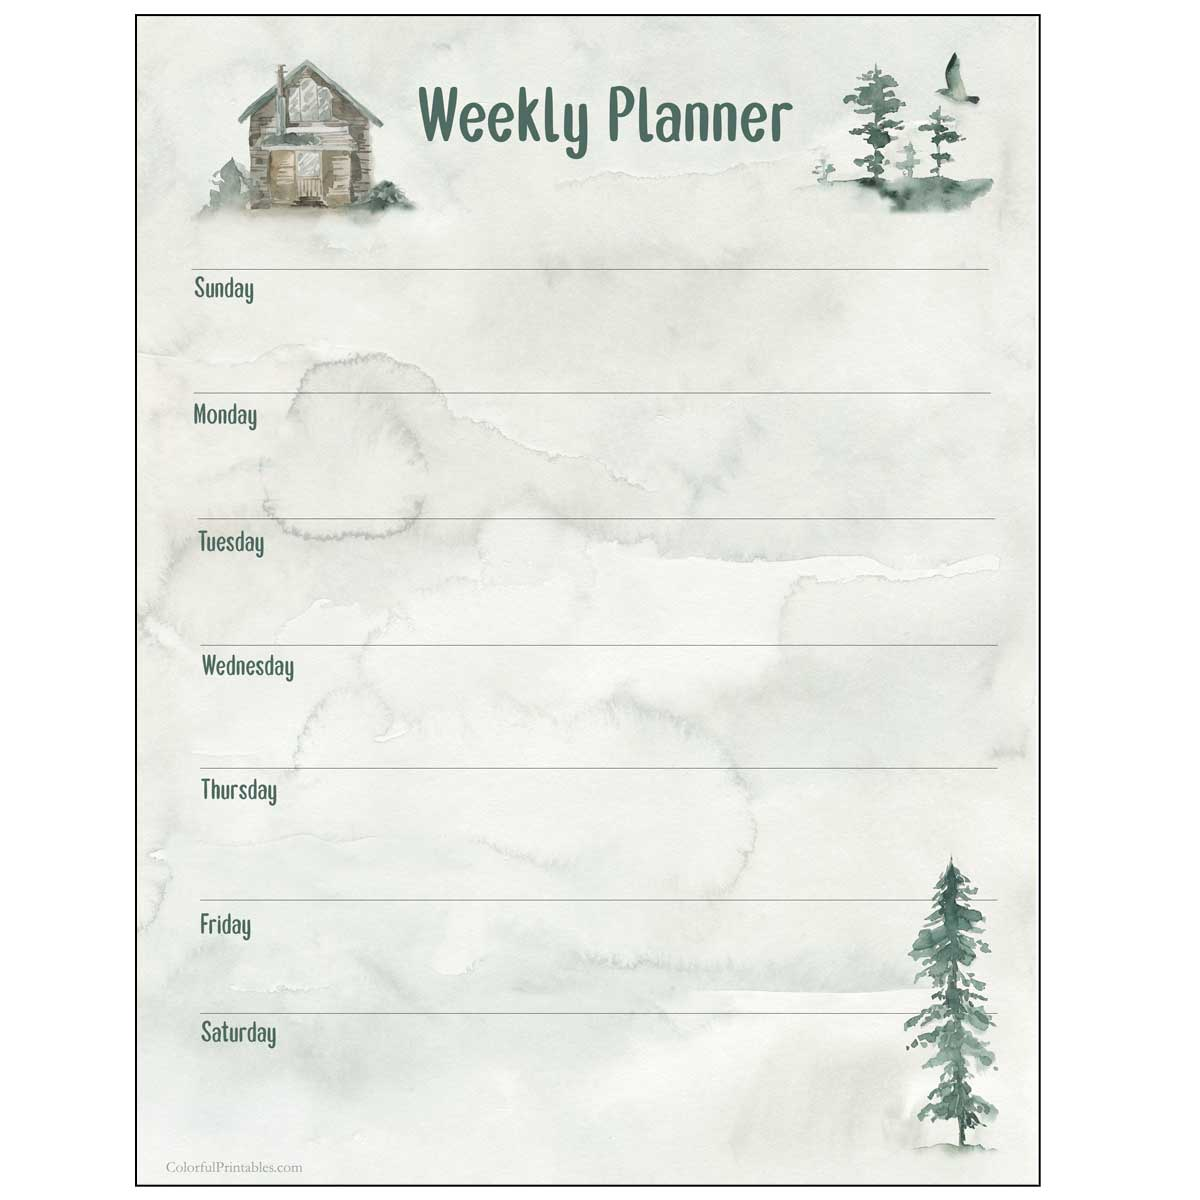 Cabin in the woods weekly planner free printable